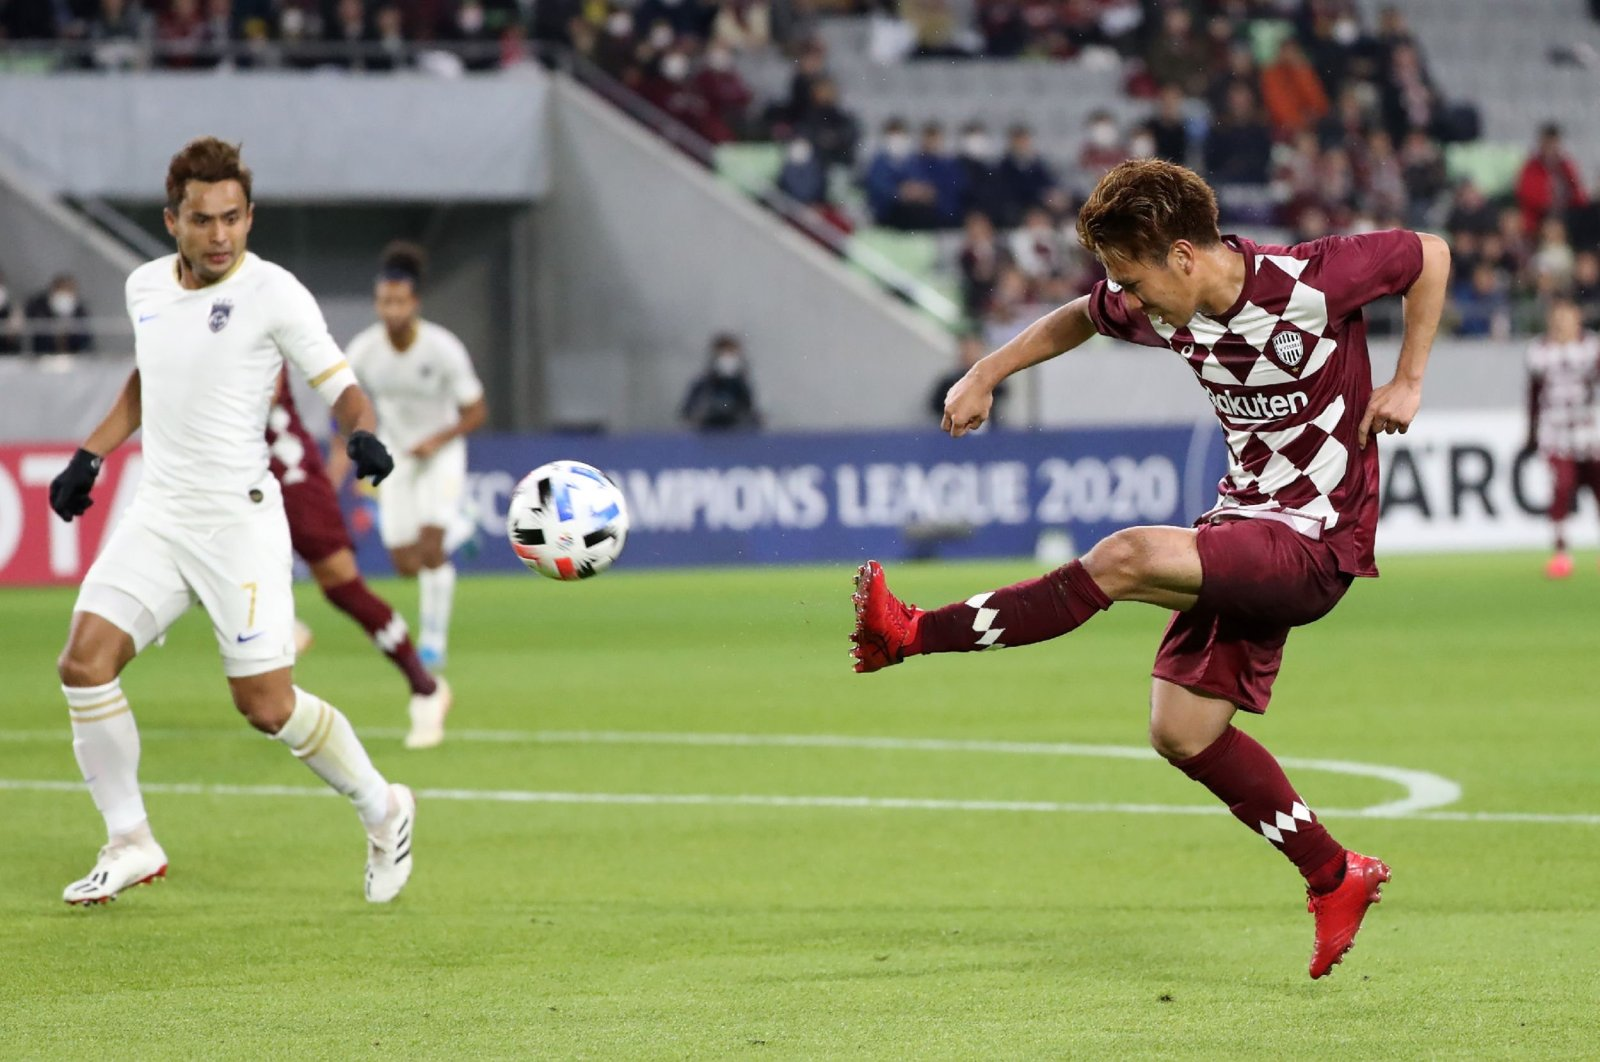 Vissel Kobe's Keijiro Ogawa (R) scores a goal as Johor Darul Ta'zim's Aidil Zafuan looks on during an AFC Champions League match, in Kobe, Japan, Feb. 12, 2020. (AFP Photo)